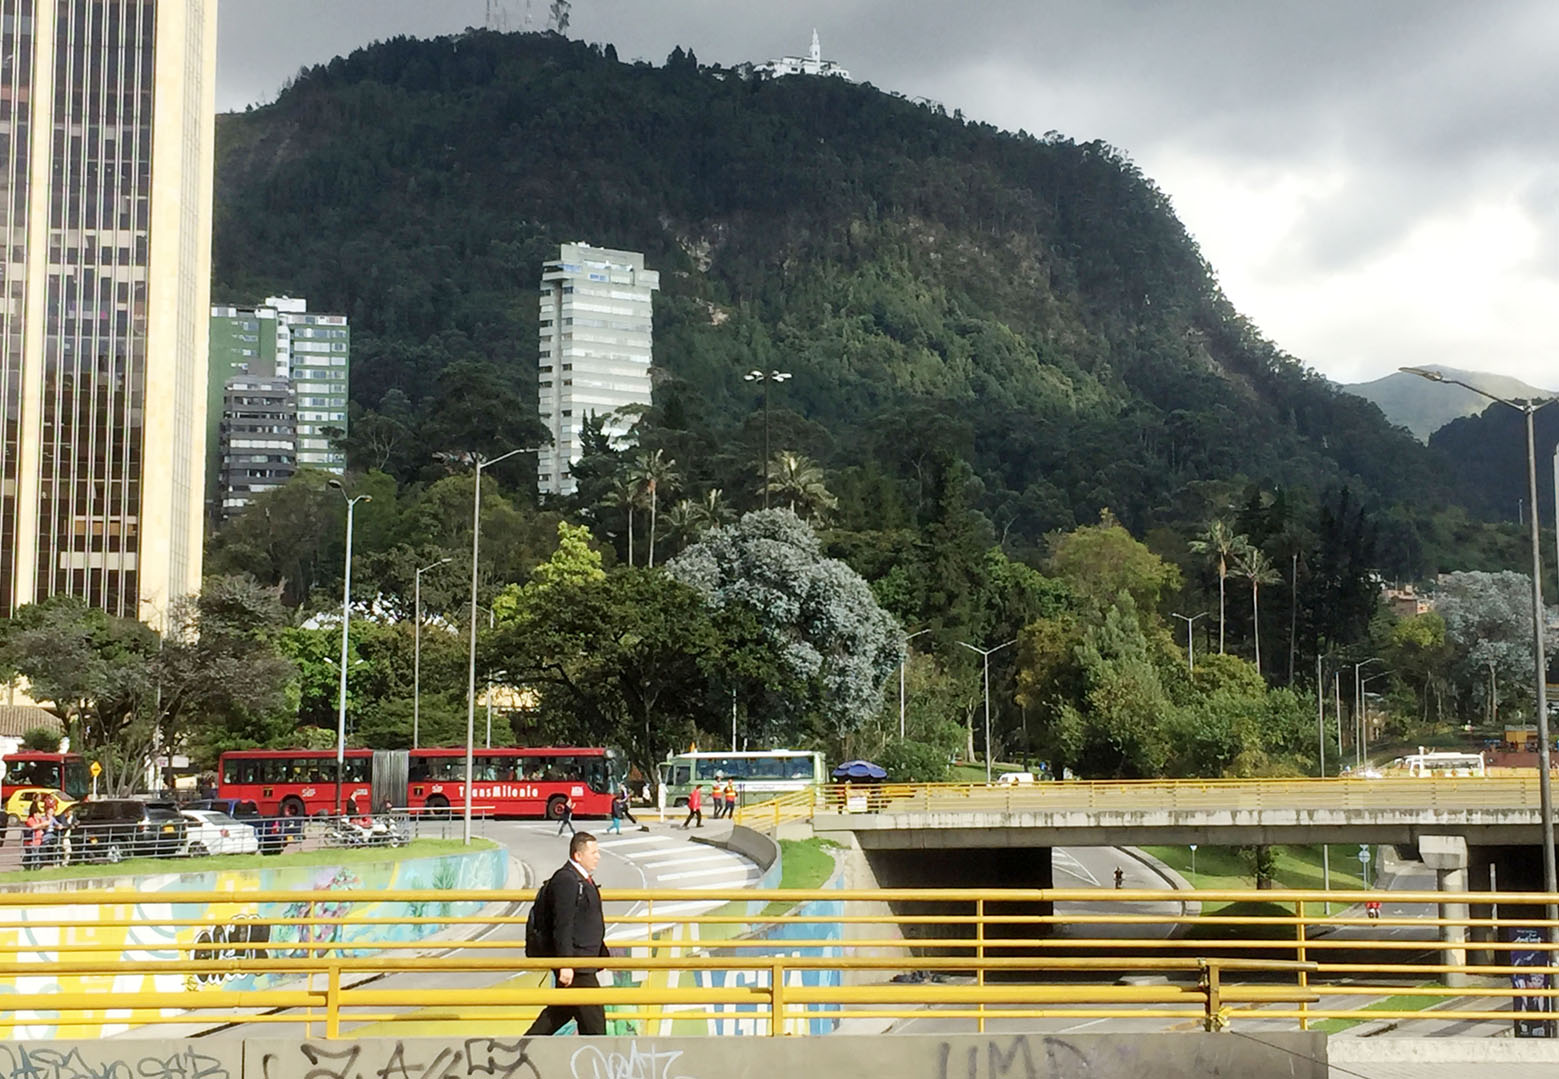 Security in Bogotá: A question of perception | The City